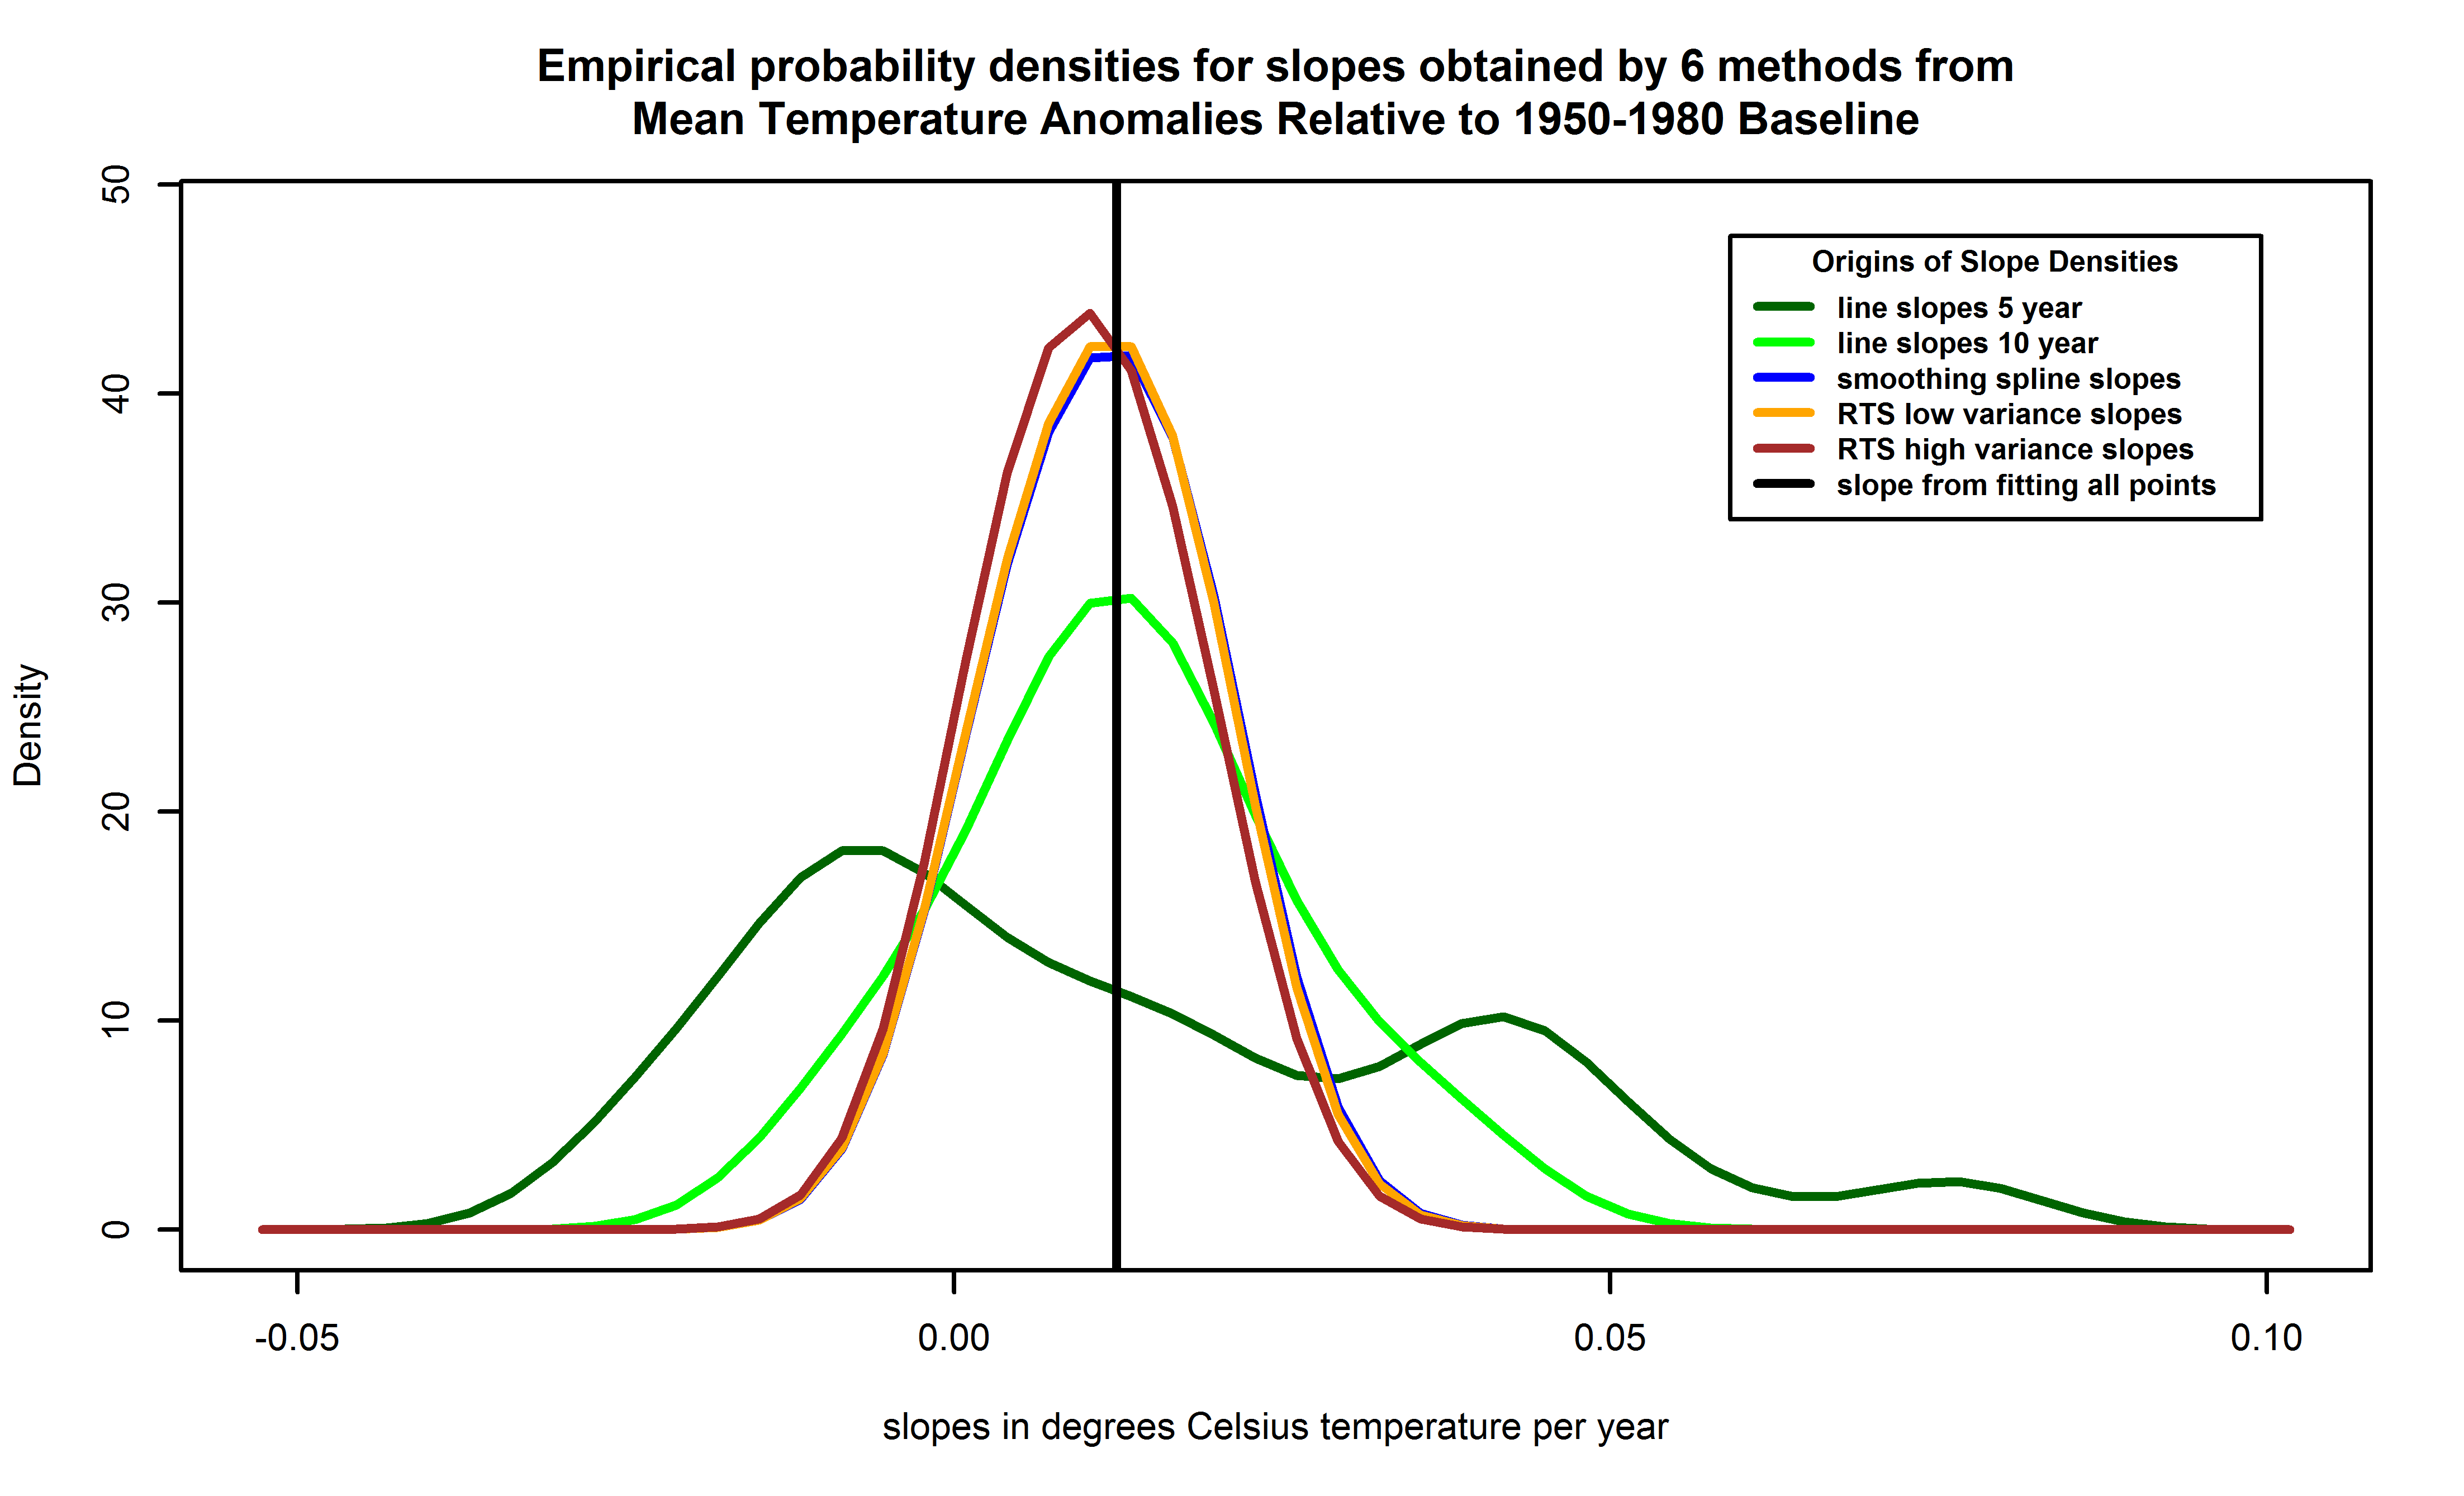 Empirical probability density functions for slopes of temperatures versus years, from each of 6 methods.